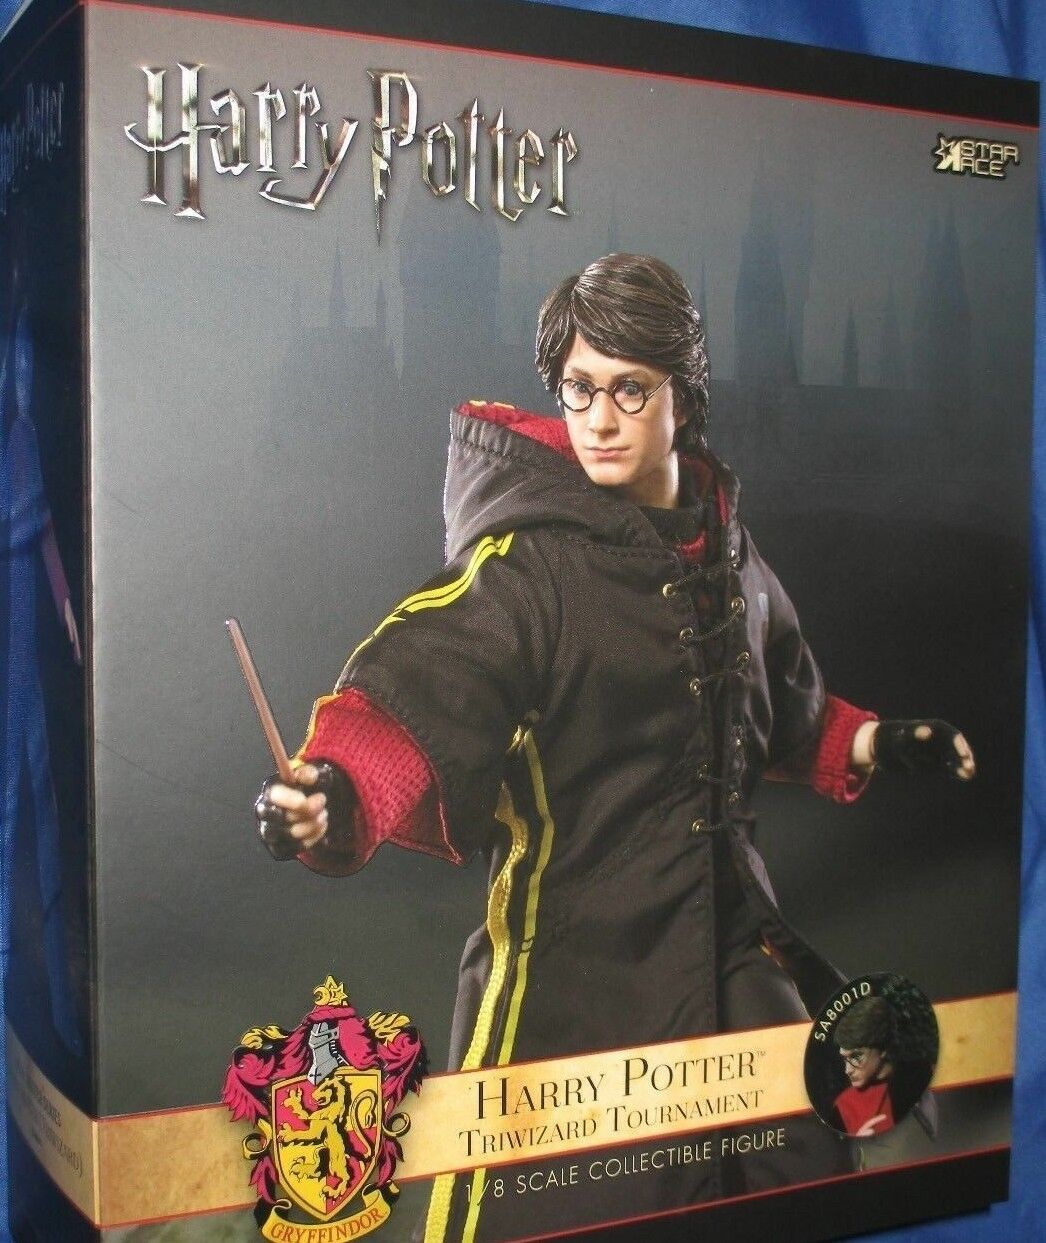 HARRY POTTER TRIWIZARD 1 8 SCALE COLLECTIBLE FIGURE BRAND NEW NEW NEW SA8001D STAR ACE 048383